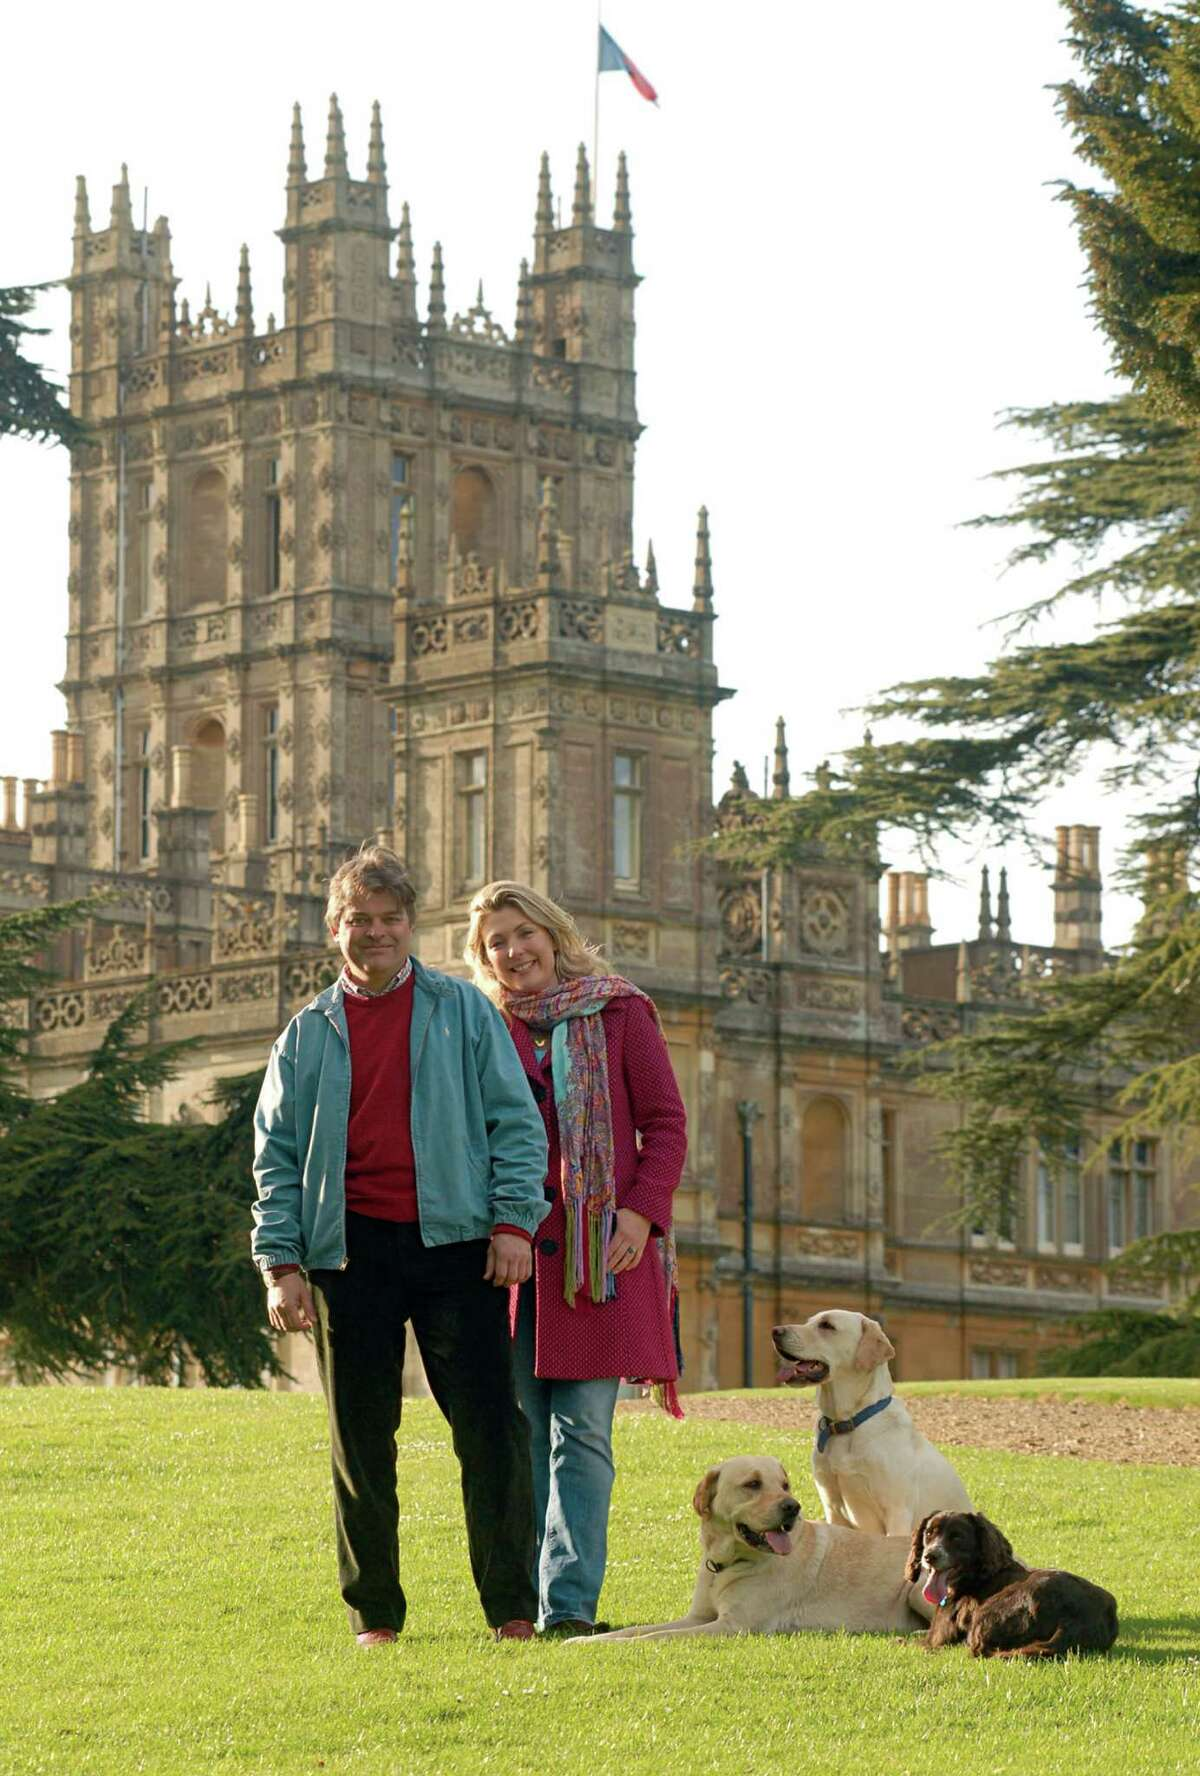 The current Earl and Countess of Carnarvon pose in front of the family home, Highclere Castle, in a portrait reminiscent of the Downton Abbey cast photo. (File photo.)